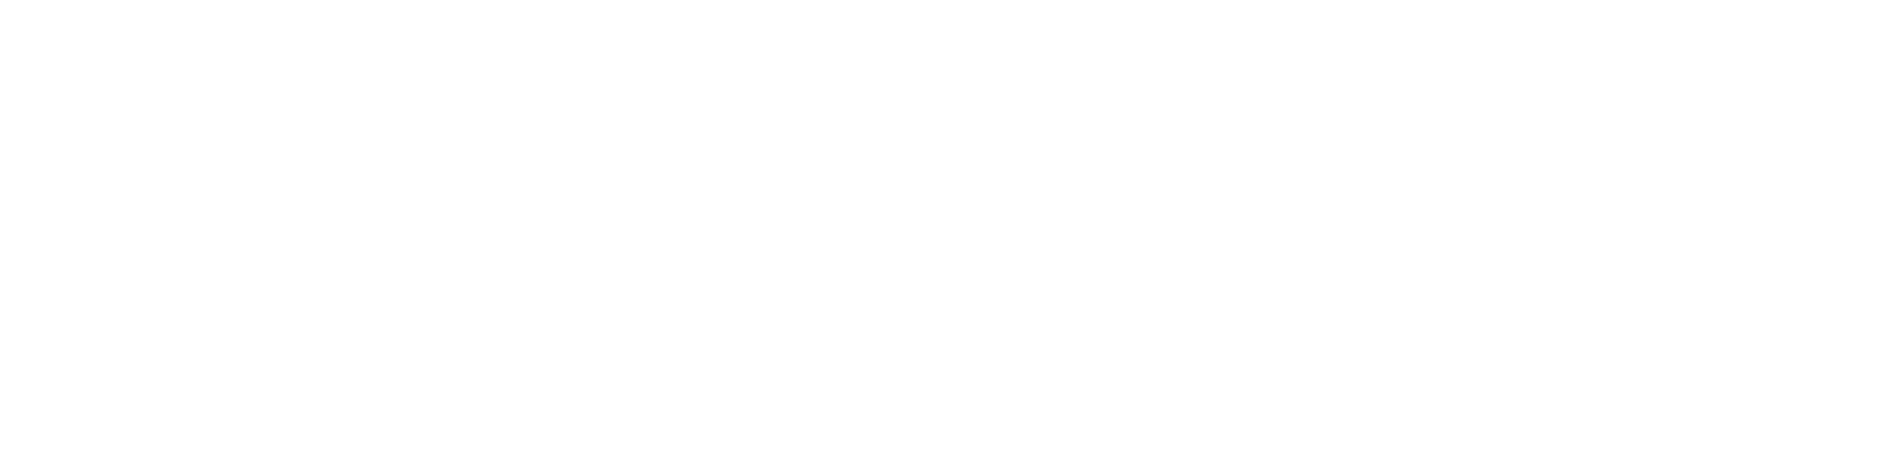 Resortmarketing